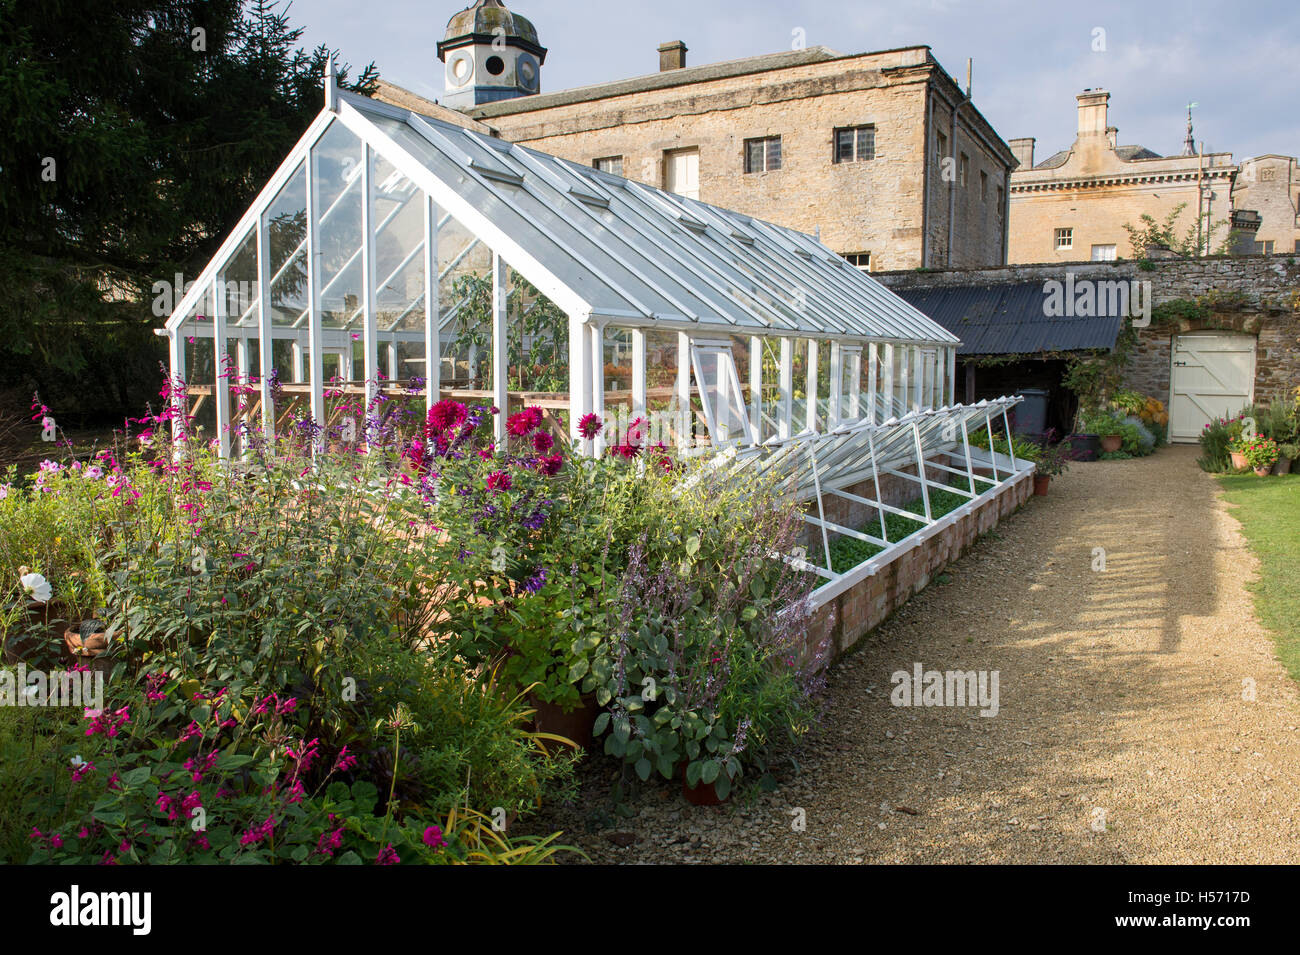 Greenhouse in autumn at Rousham House and Garden. Oxfordshire, England - Stock Image